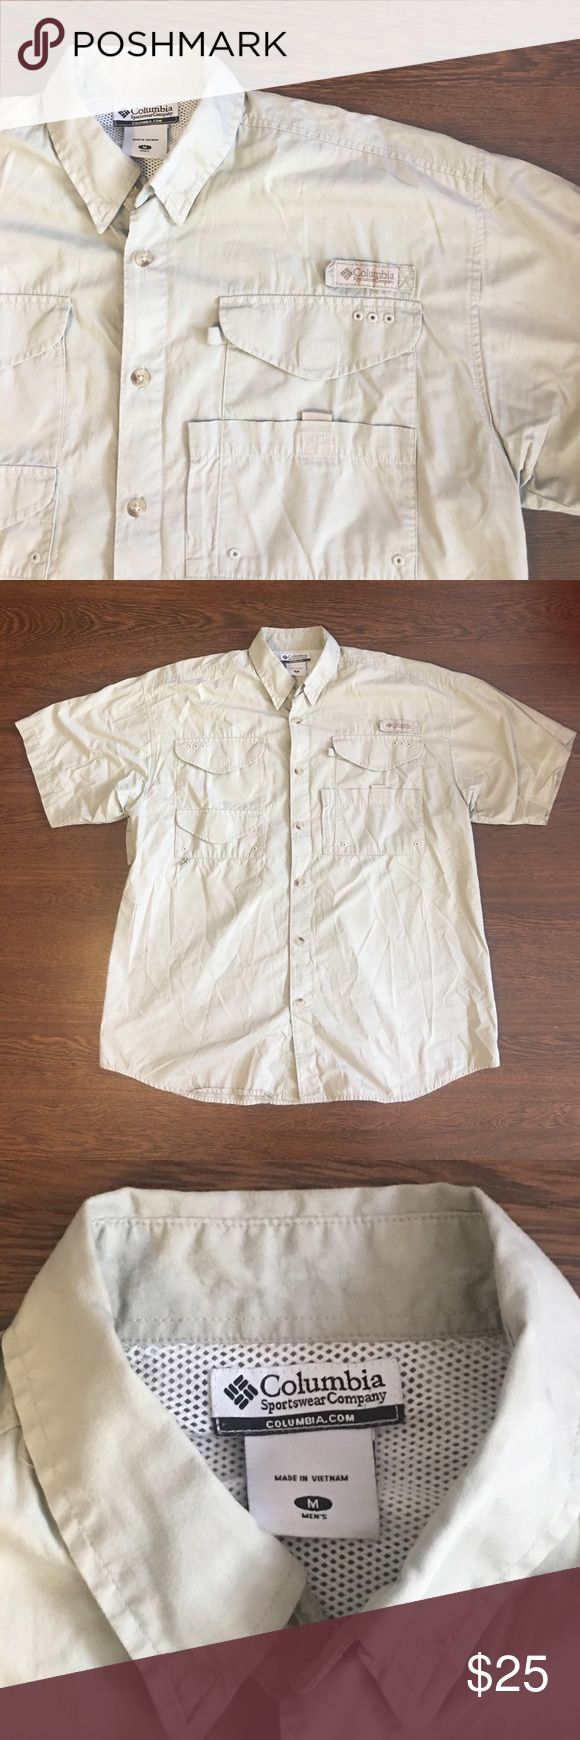 Columbia Sportswear Company PFG Shirt Size Medium Columbia Sportswear Company PFG Shirt. Performance Fishing Gear. Men's Size Medium. Small Spot On Right Side. Overall Great Pre Owned Condition. Columbia Shirts Casual Button Down Shirts